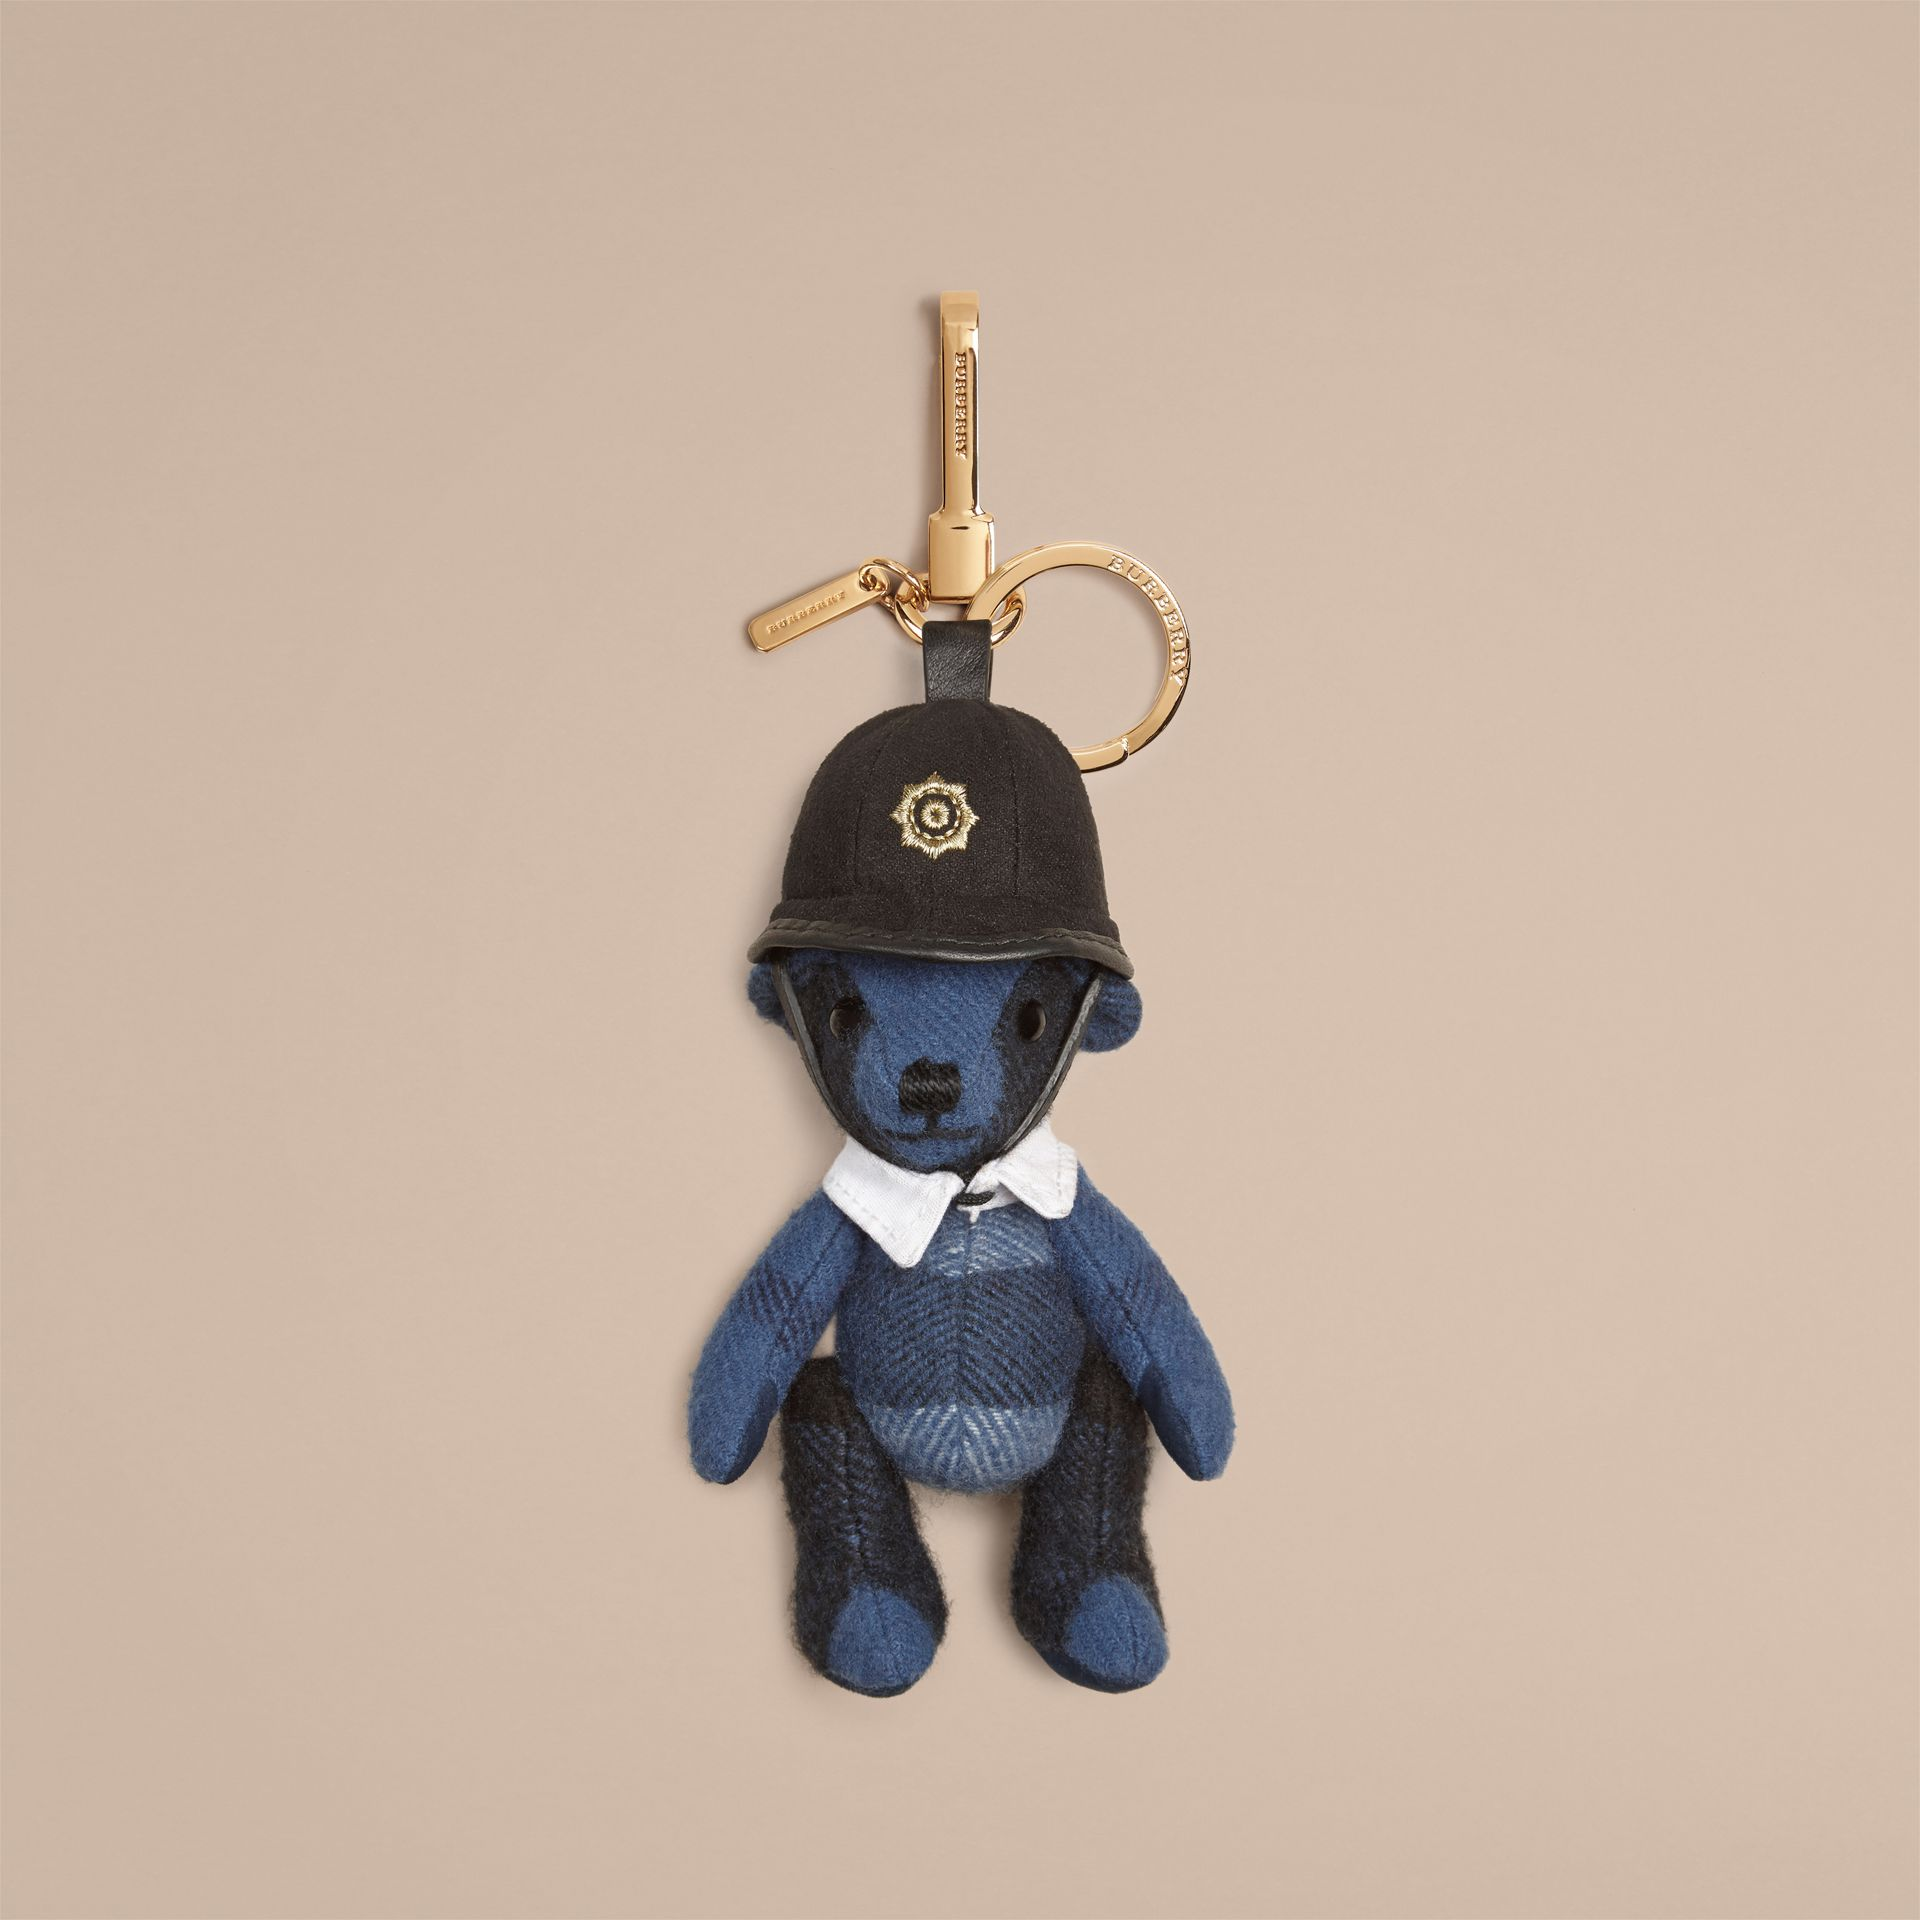 Bijou porte-clés Thomas Bear Bobby (Bleu Officier) | Burberry - photo de la galerie 1